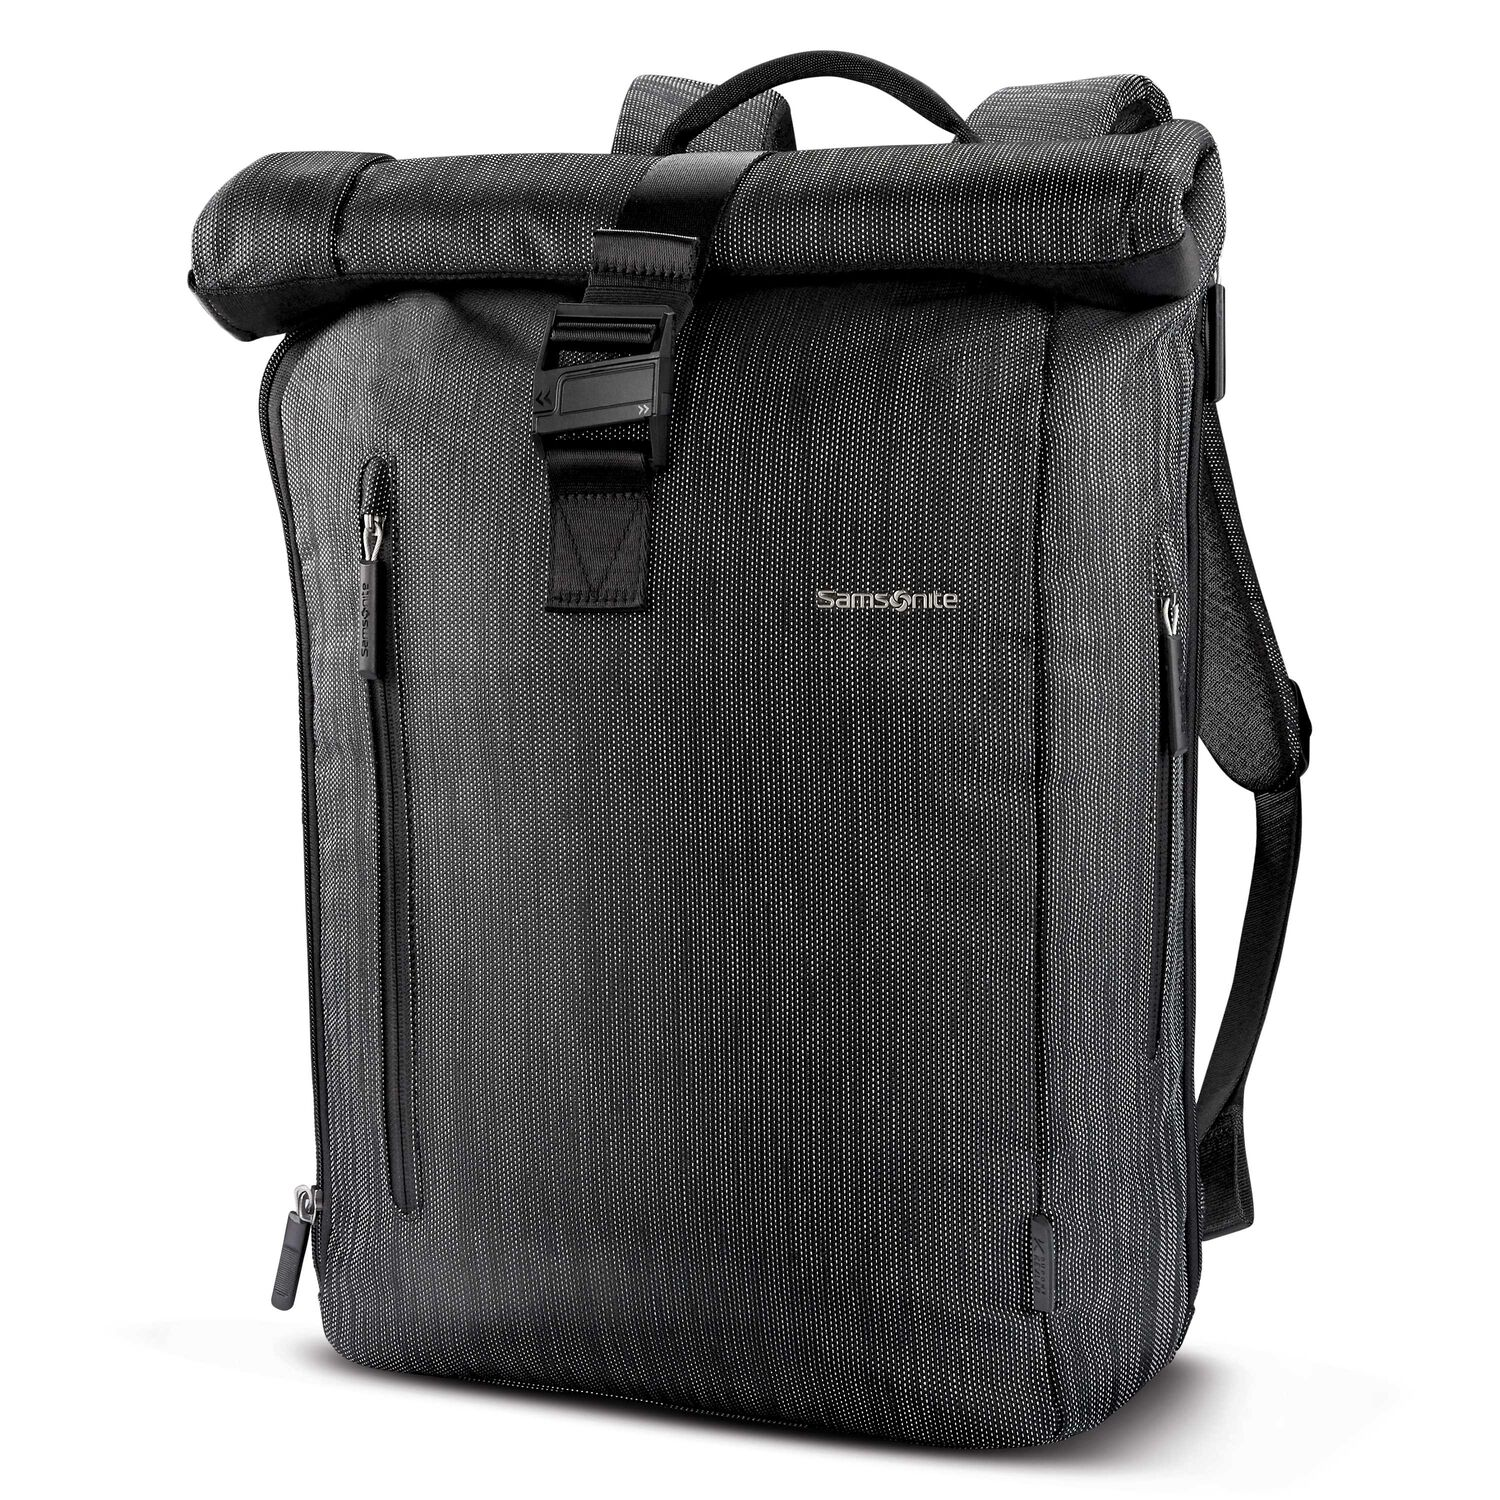 Samsonite SXK Rolltop Backpack in the color Black/Silver.